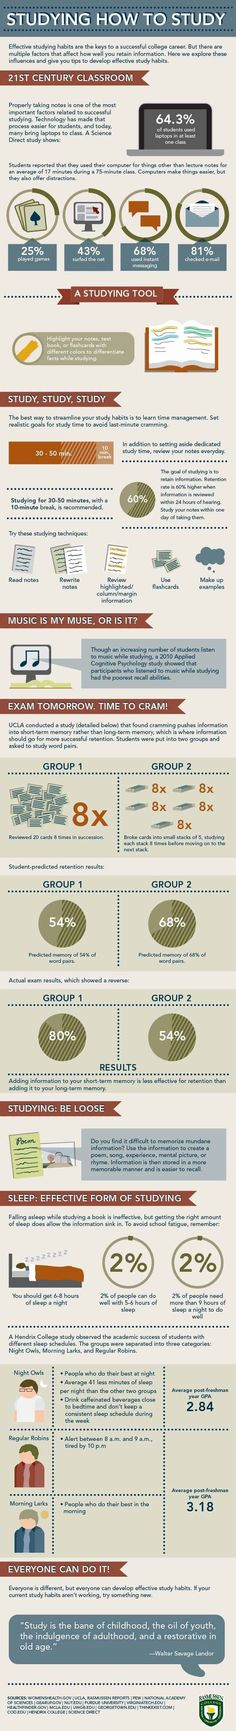 Studying how to study #infografia #infographic #education